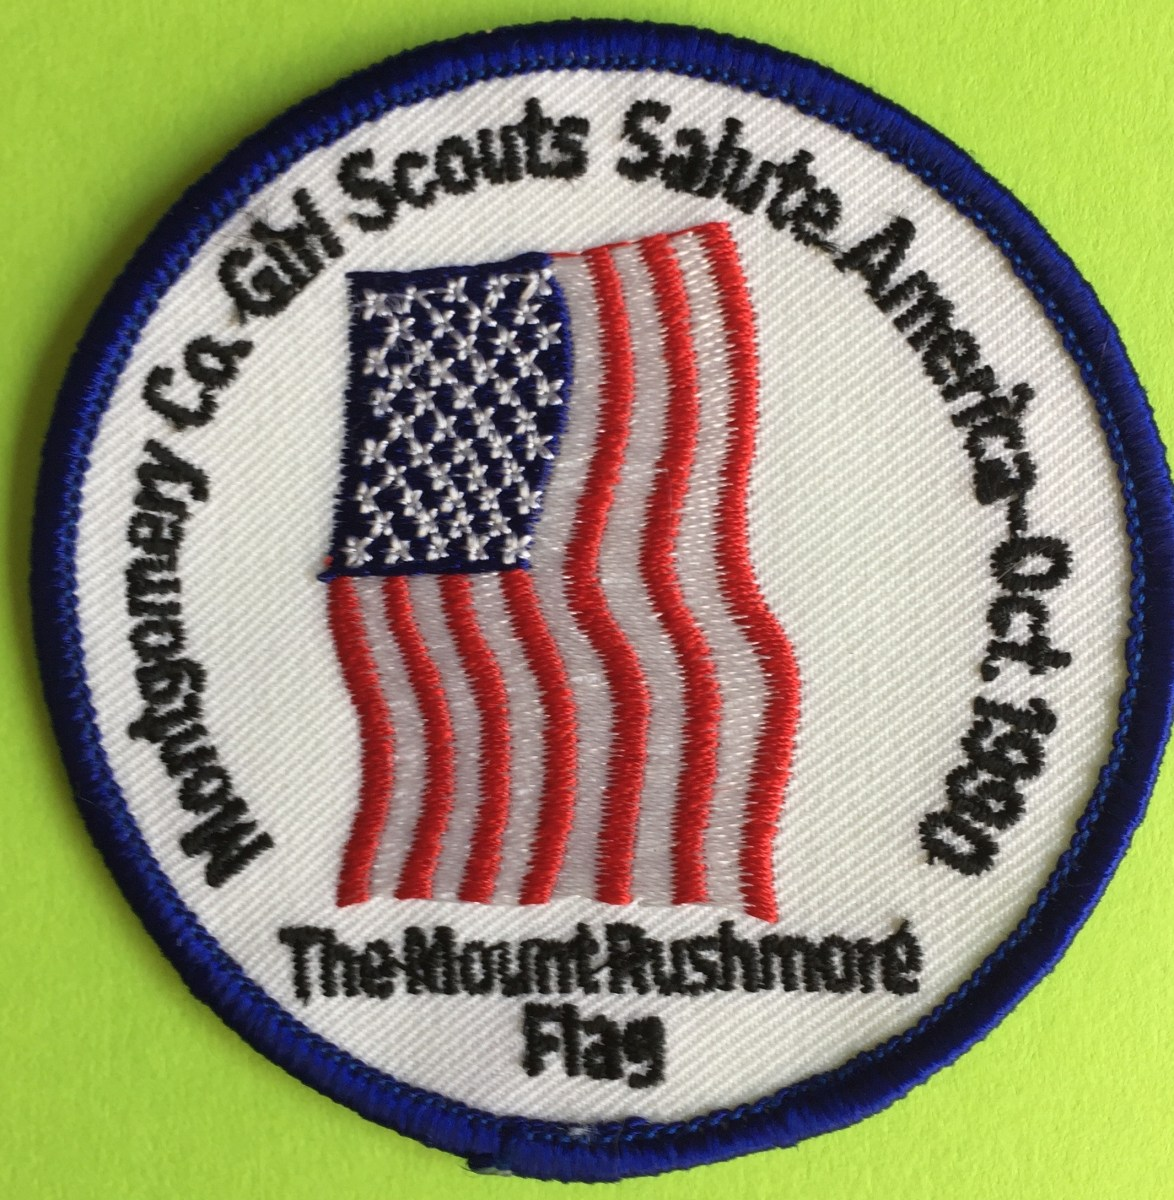 mt rushmore flag patch